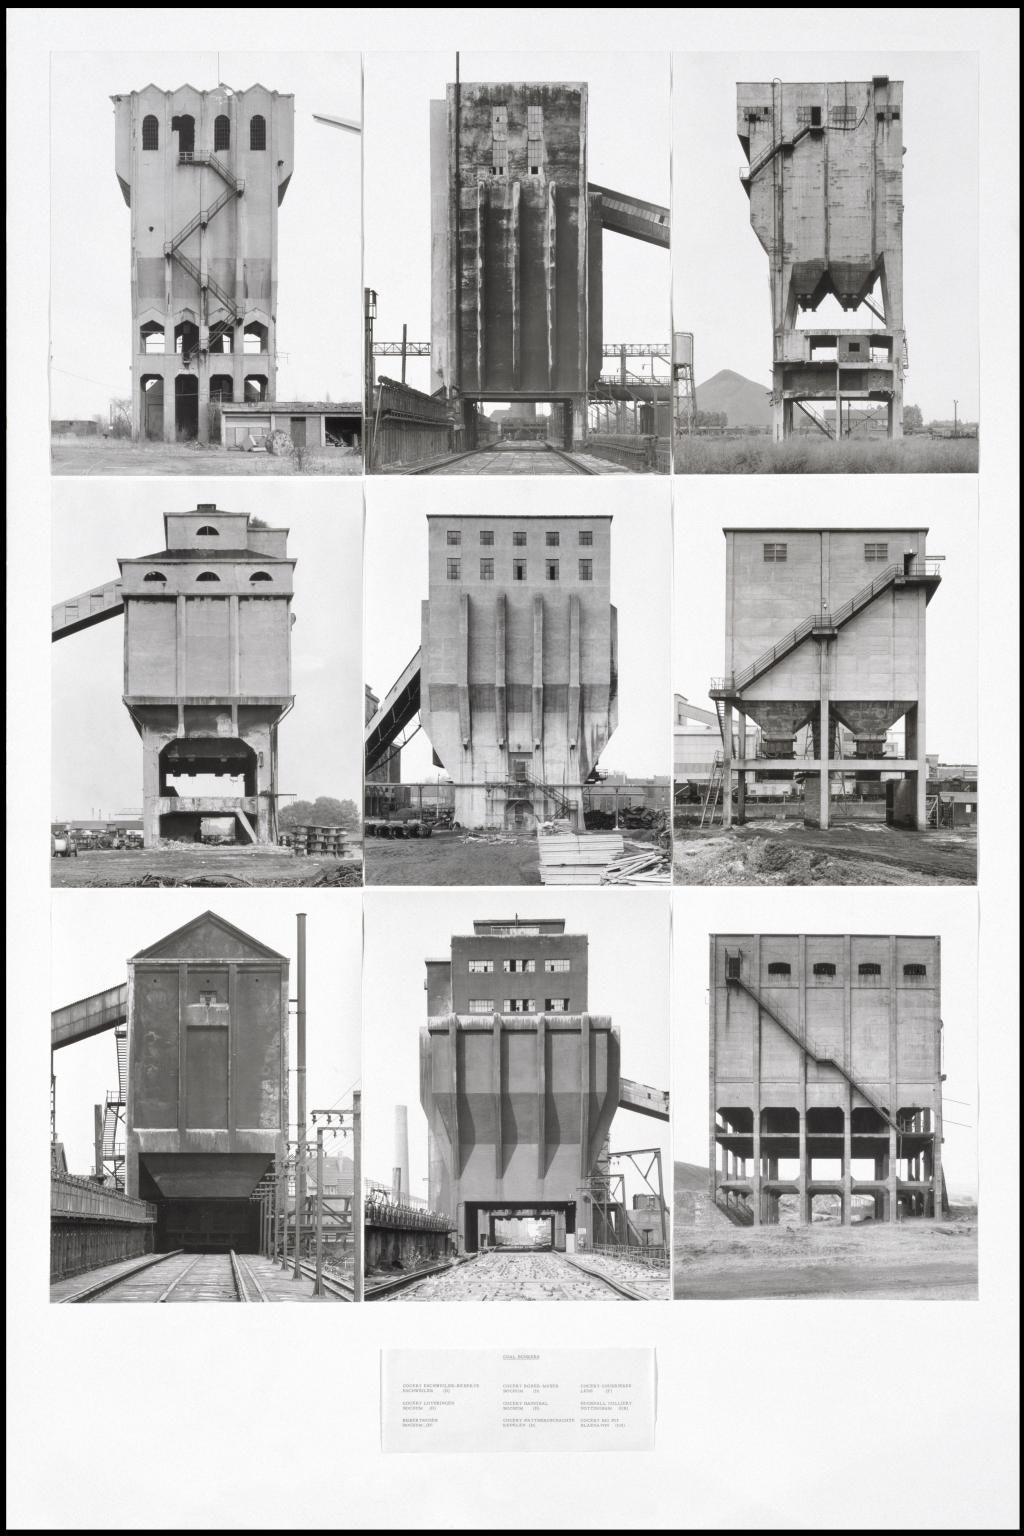 Coal Bunkers 1974 by Bernd Becher and Hilla Becher 1931-2007, 1934-2015